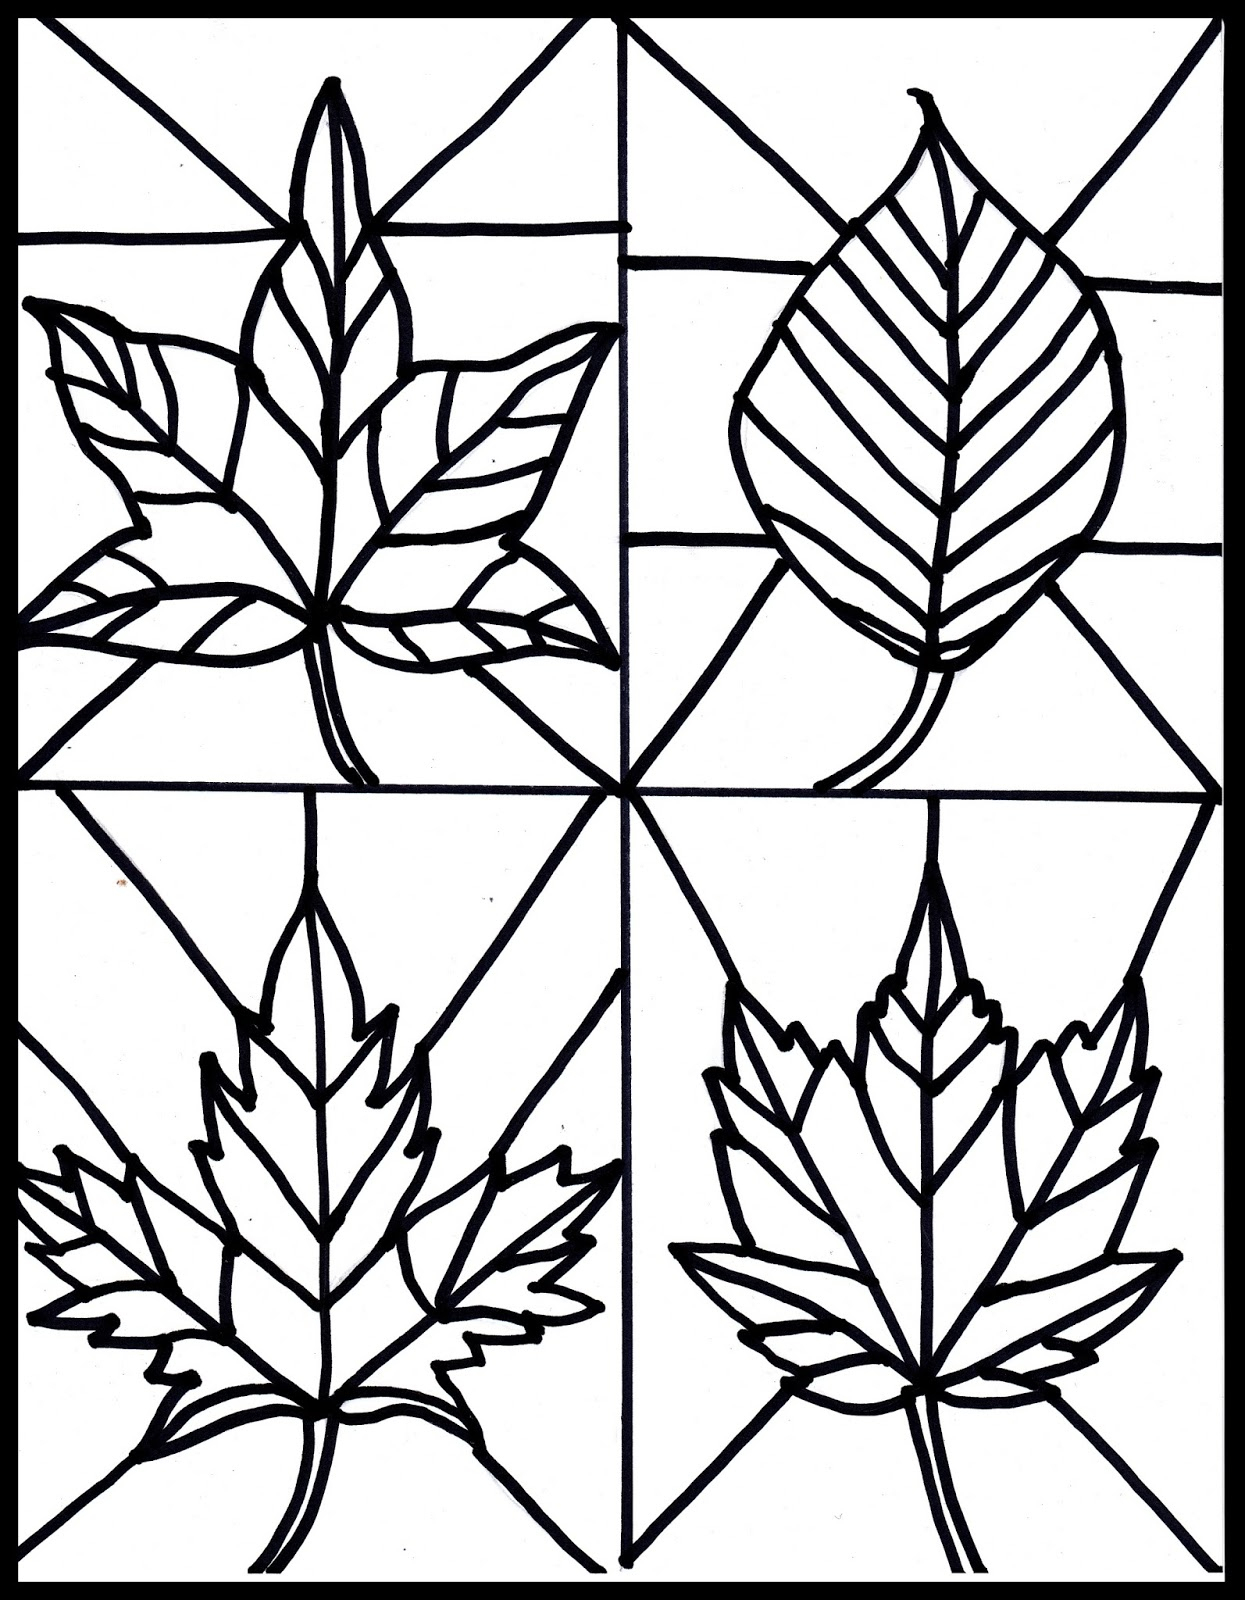 Coloring Pages : Autumn Leaves Coloring Pages Color Impressive Cool - Free Printable Fall Leaves Coloring Pages